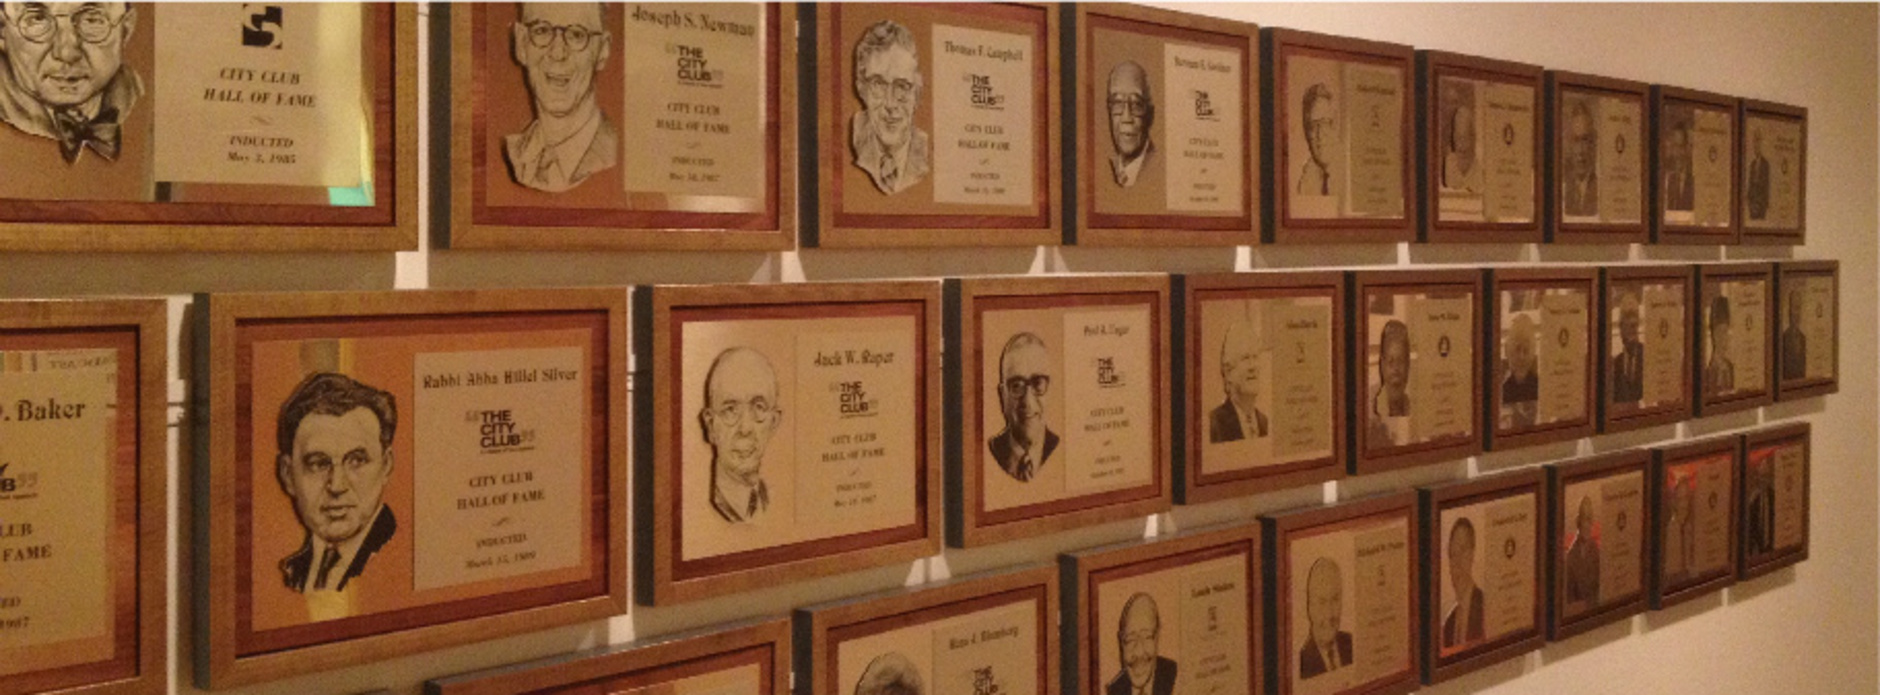 Honoring the 2015 Hall of Fame Inductees